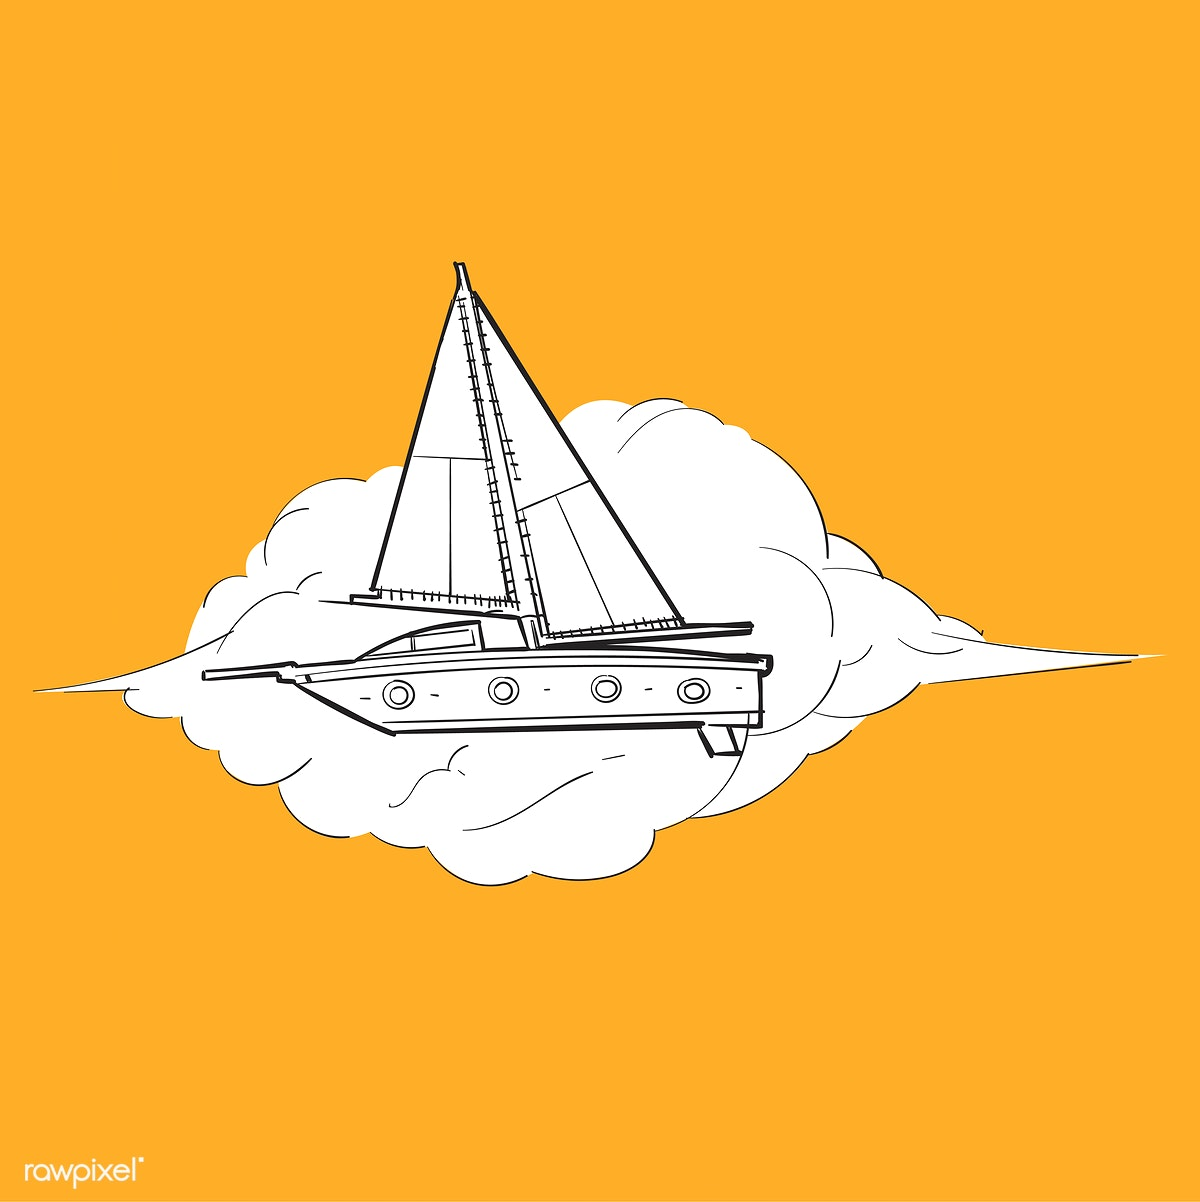 image free stock Download premium illustration of. Boats drawing creative